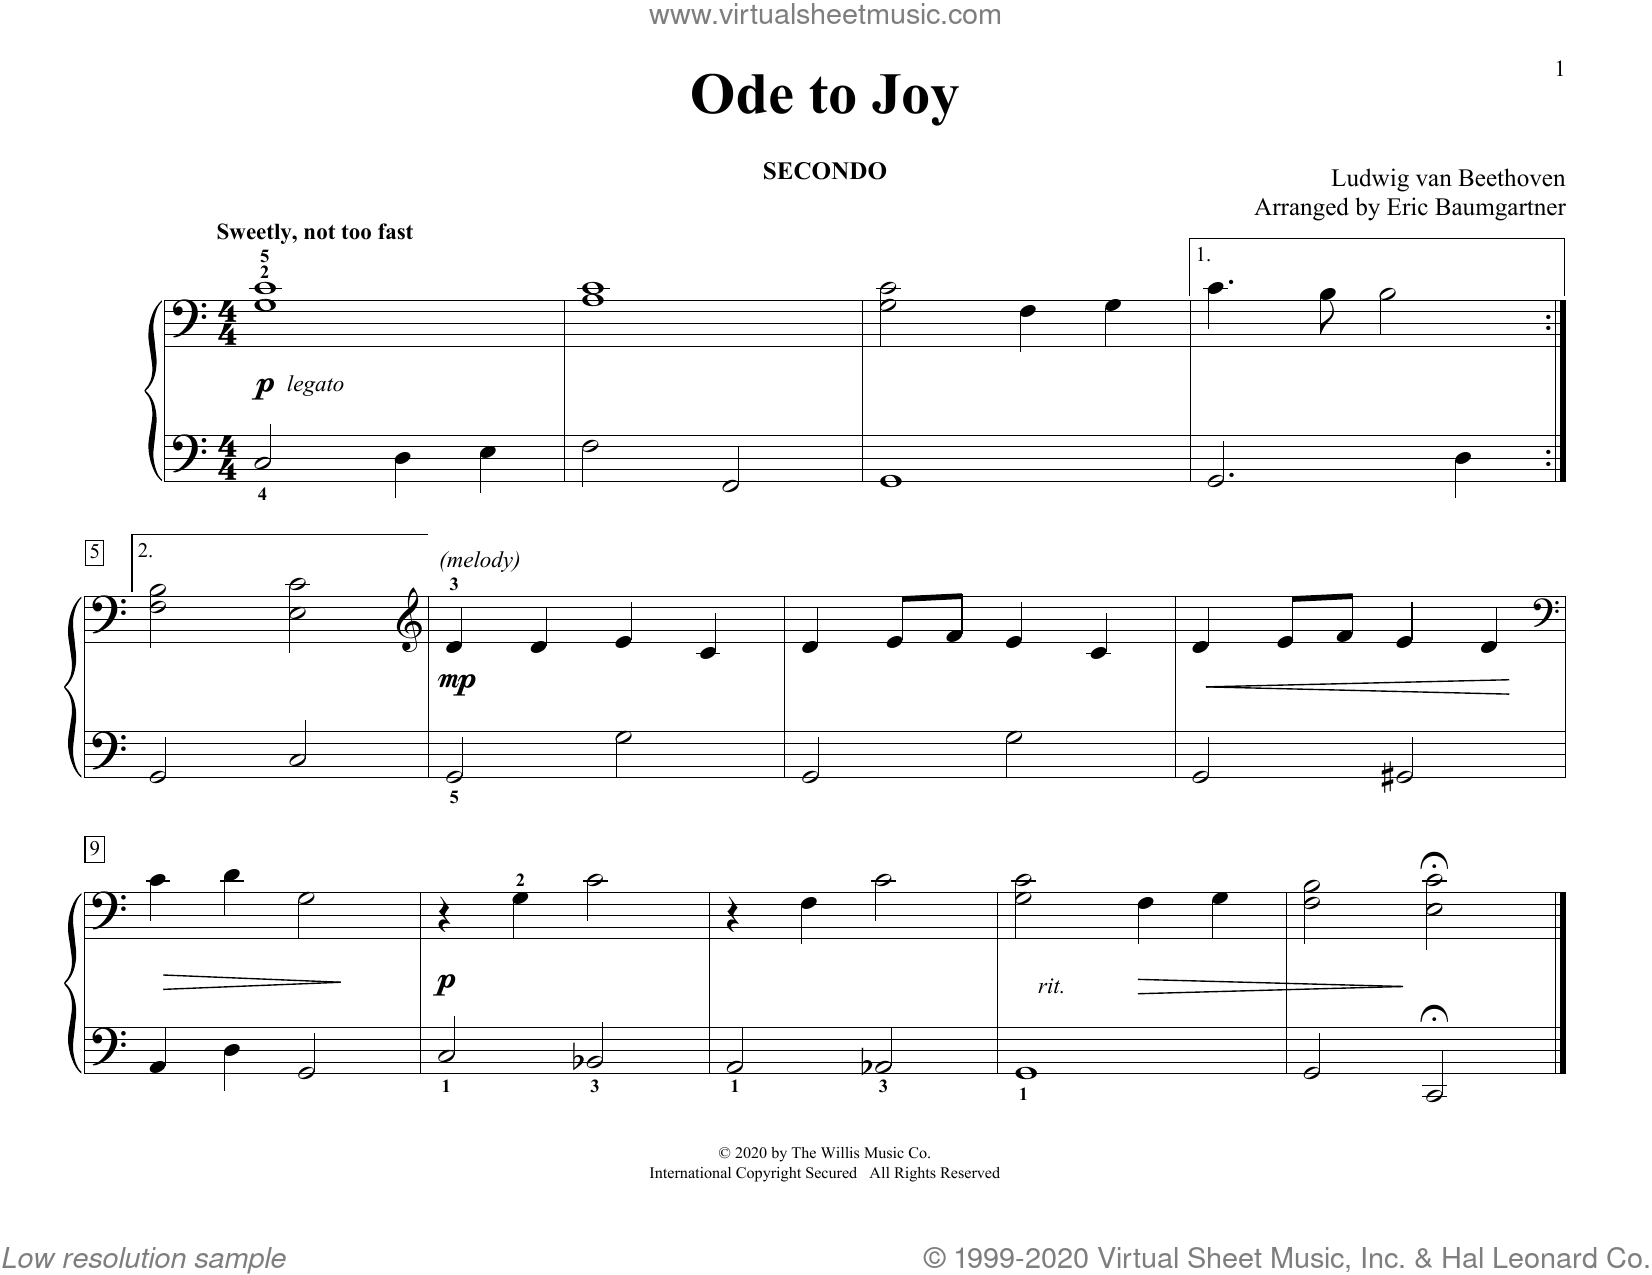 Ode To Joy (arr. Eric Baumgartner) sheet music for piano four hands by Ludwig van Beethoven and Eric Baumgartner, classical score, intermediate skill level